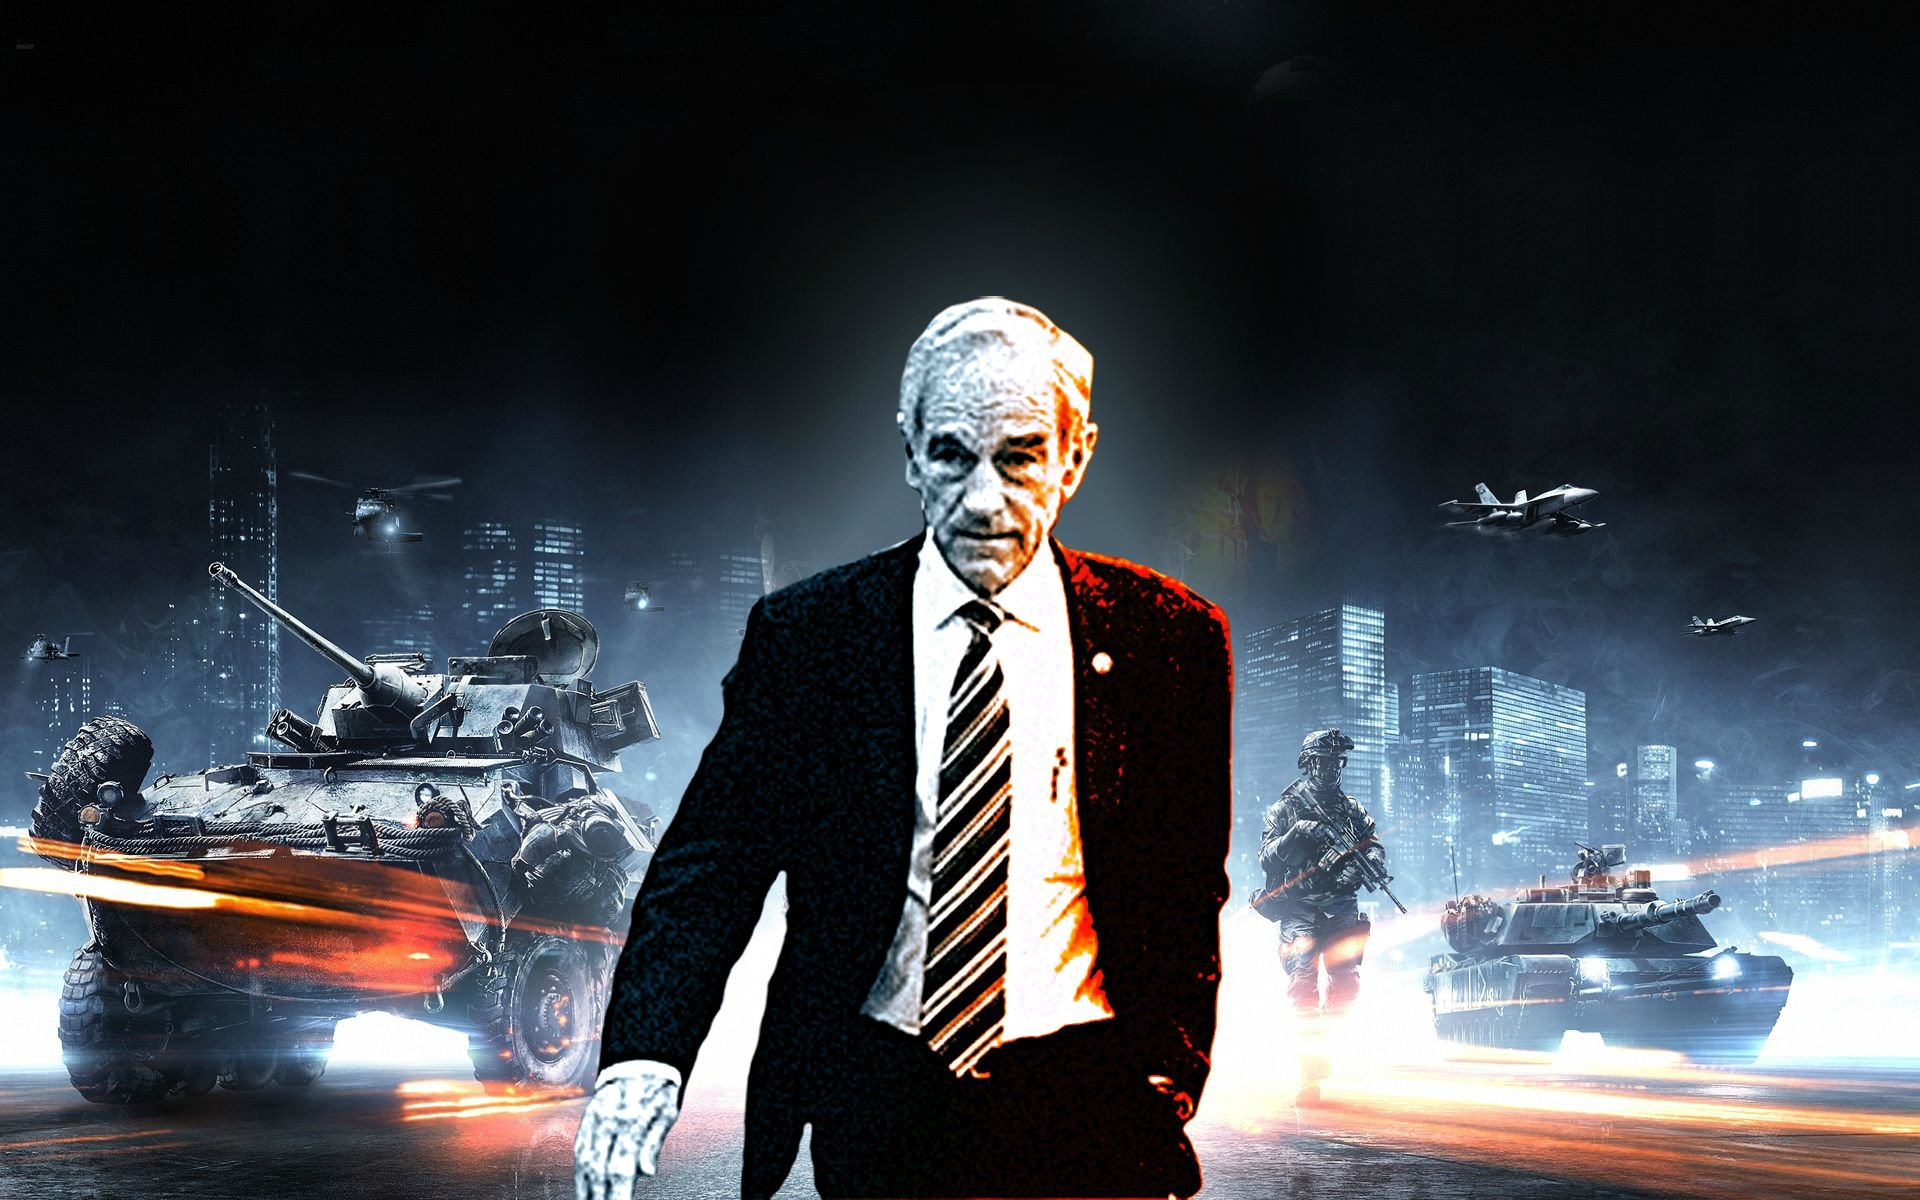 Ron Paul Awesome